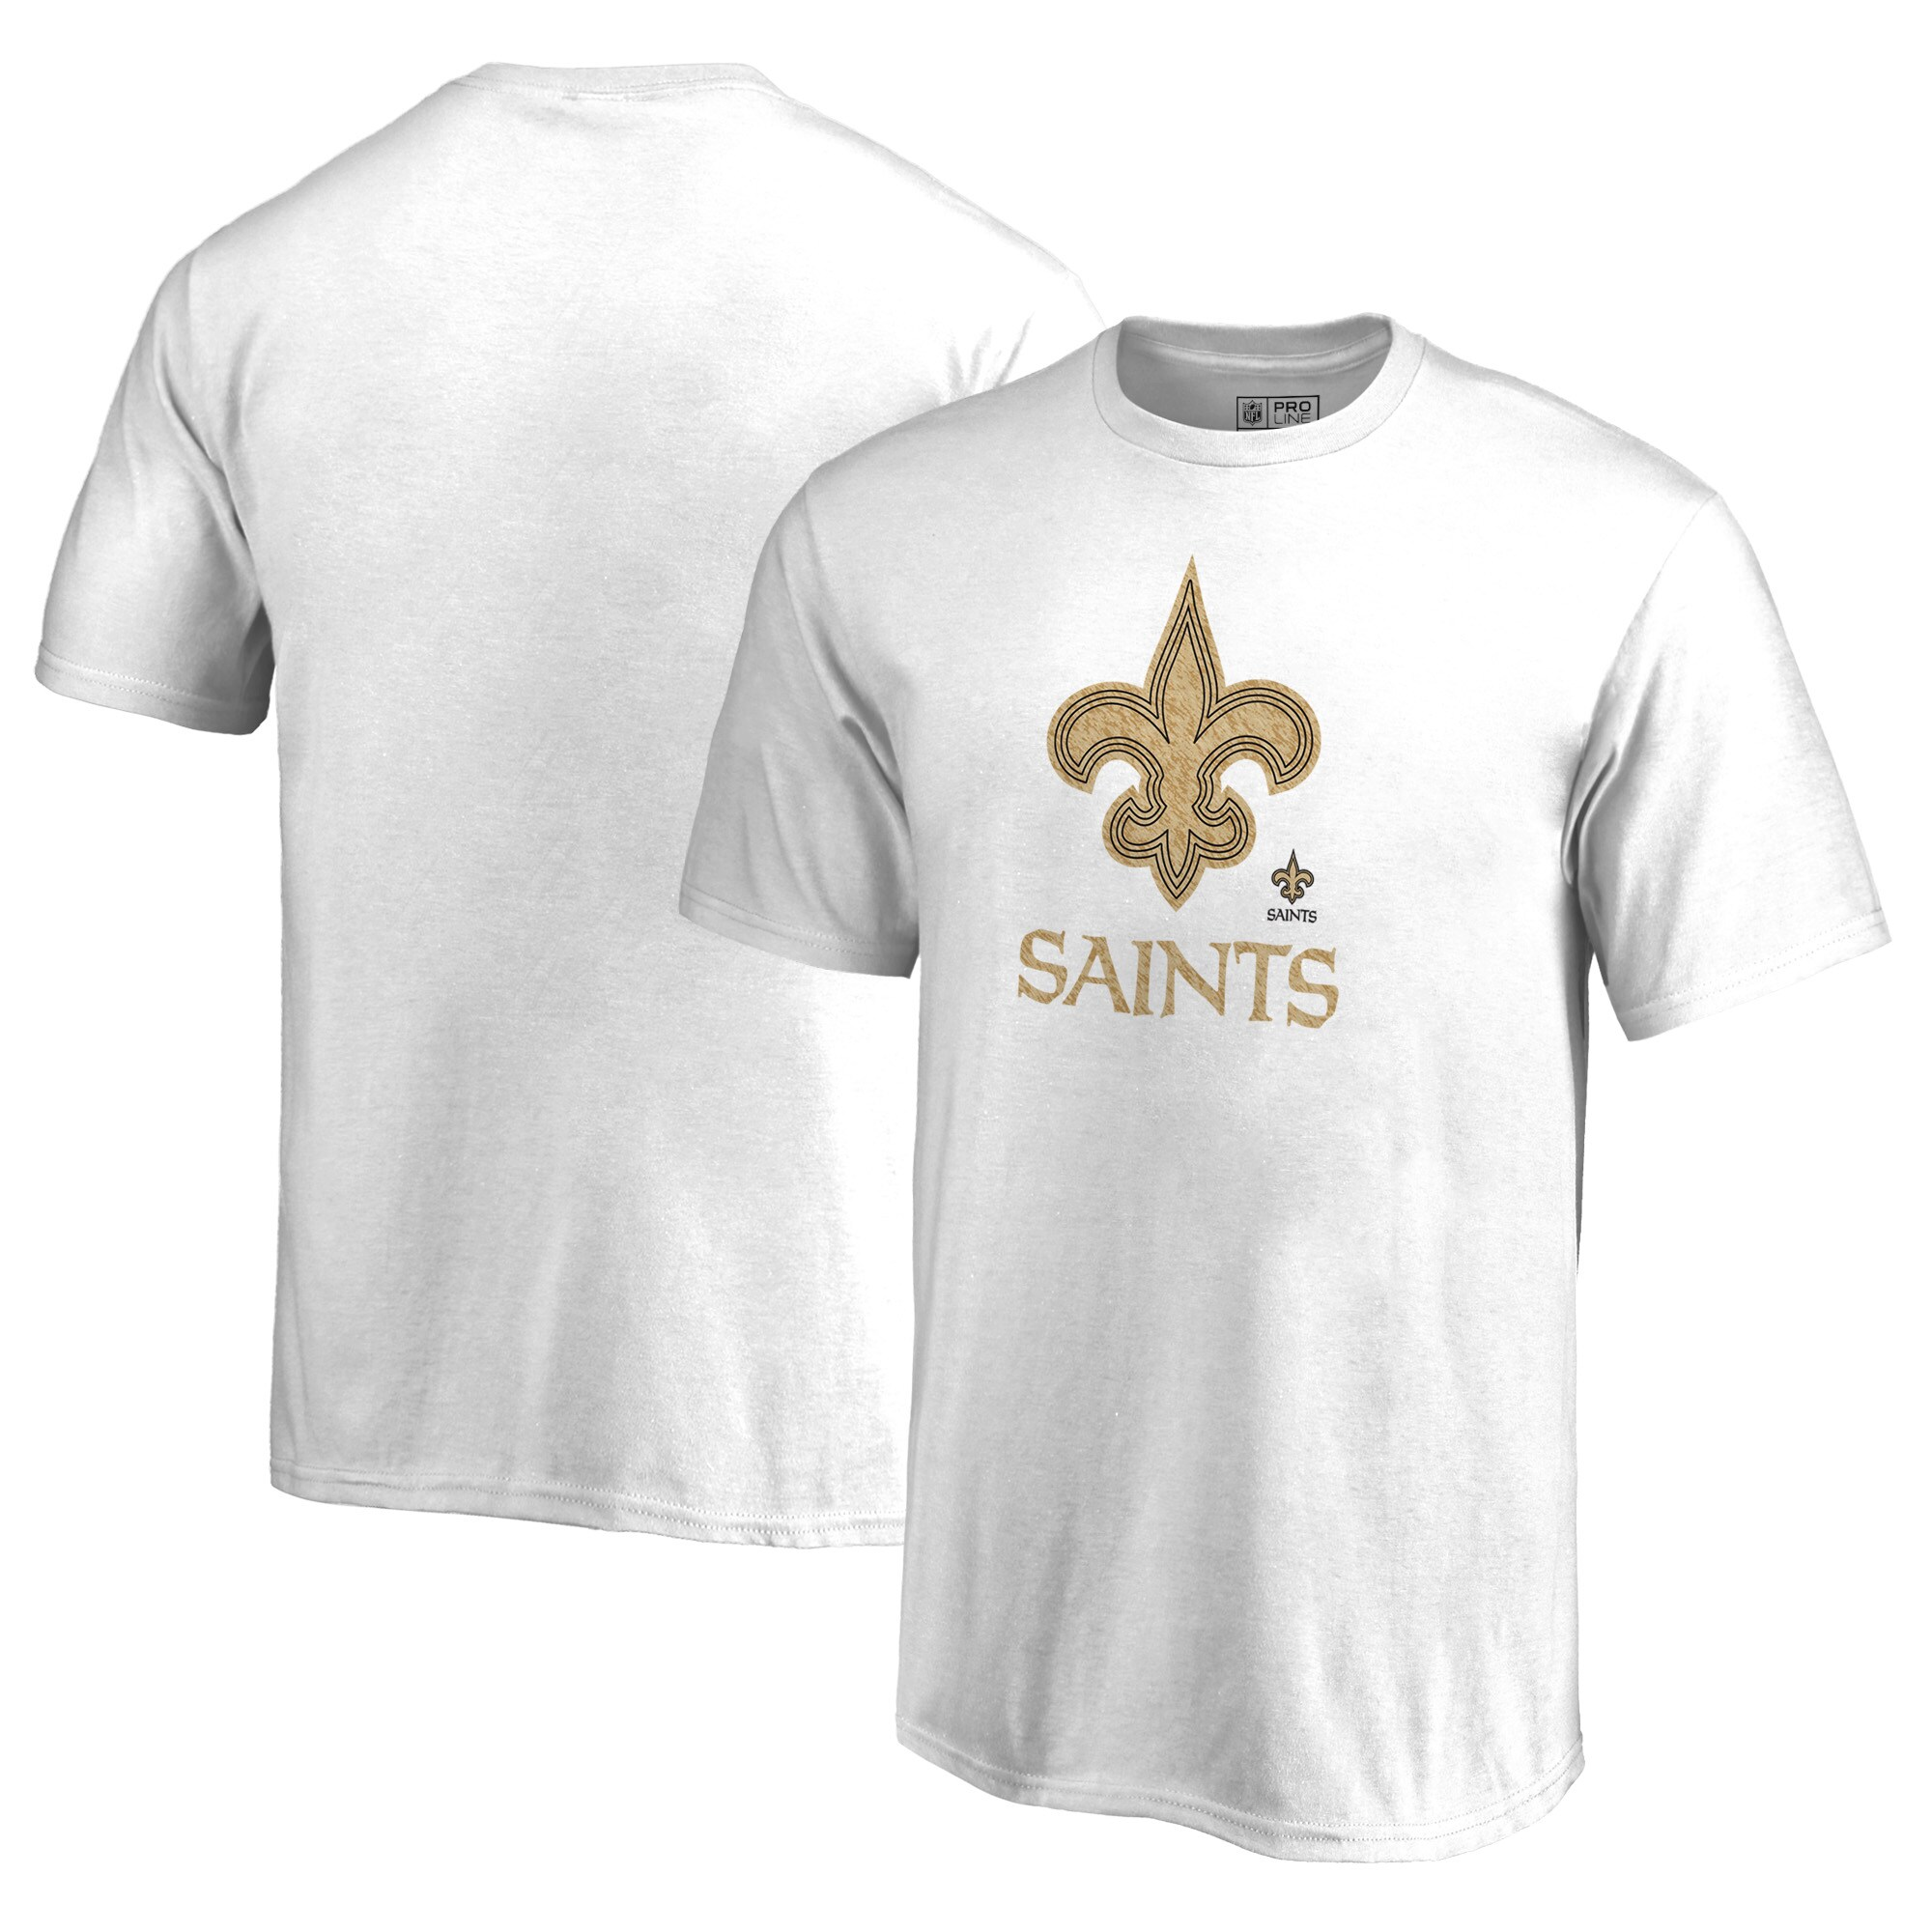 New Orleans Saints NFL Pro Line by Fanatics Branded Youth Training Camp Hookup T-Shirt - White